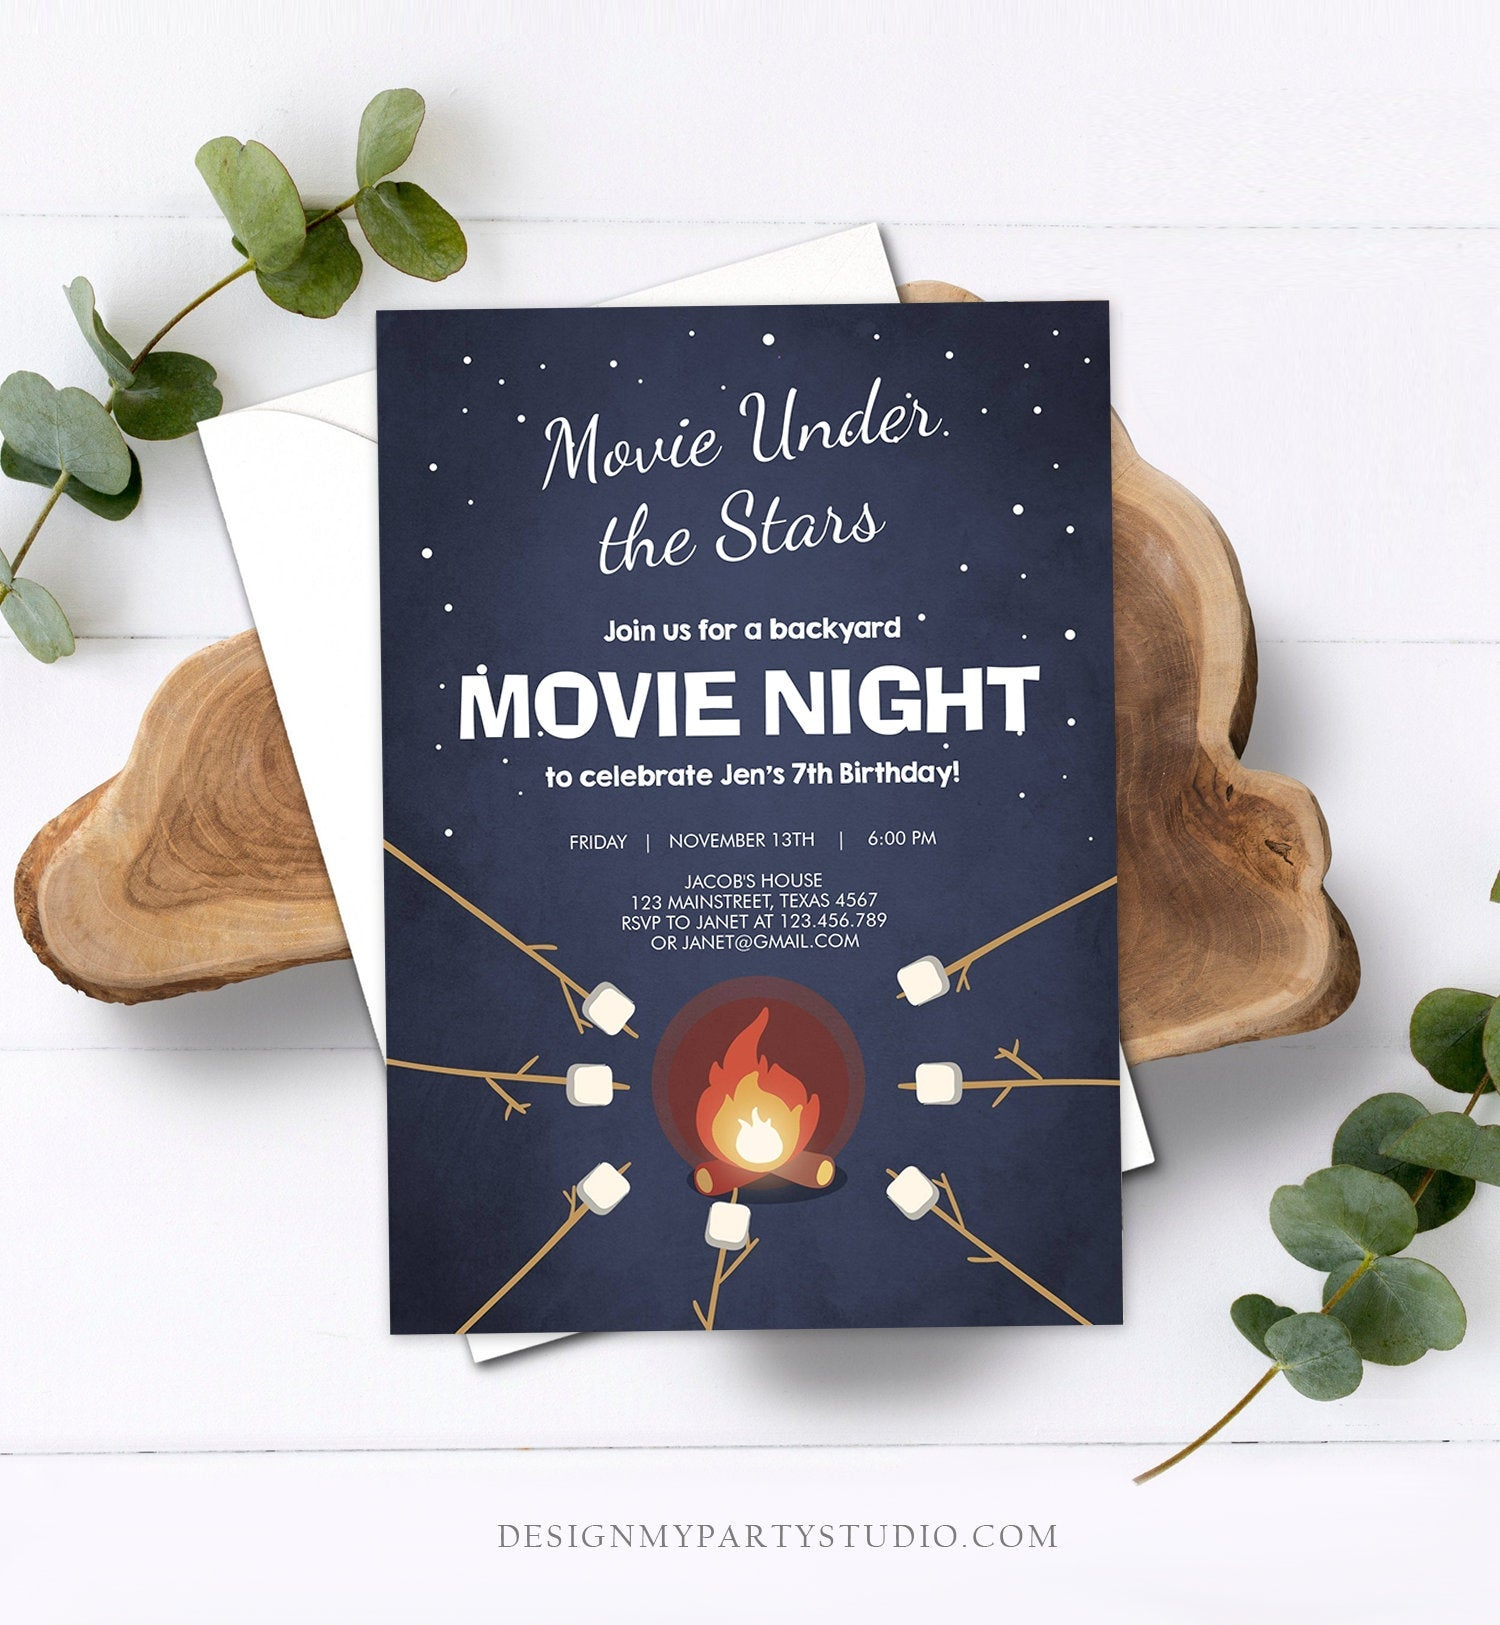 Editable Movie Night Birthday Invitation Under the Stars Bonfire Backyard Movie Party Outdoor Download Printable Invite Template Corjl 0268